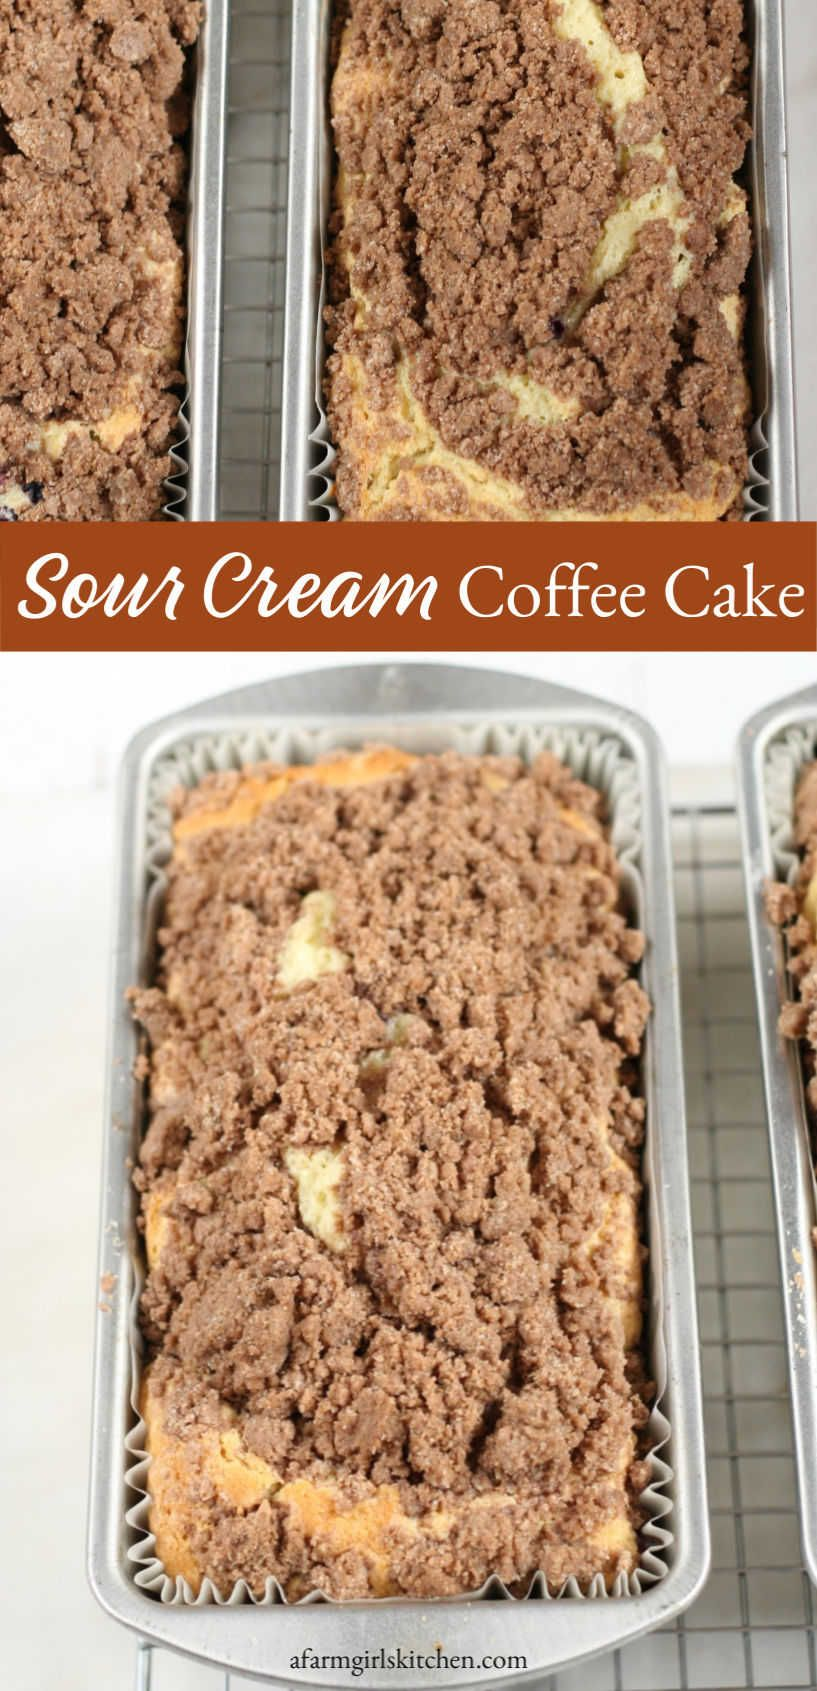 This classic coffee cake with crumb topping is easy to